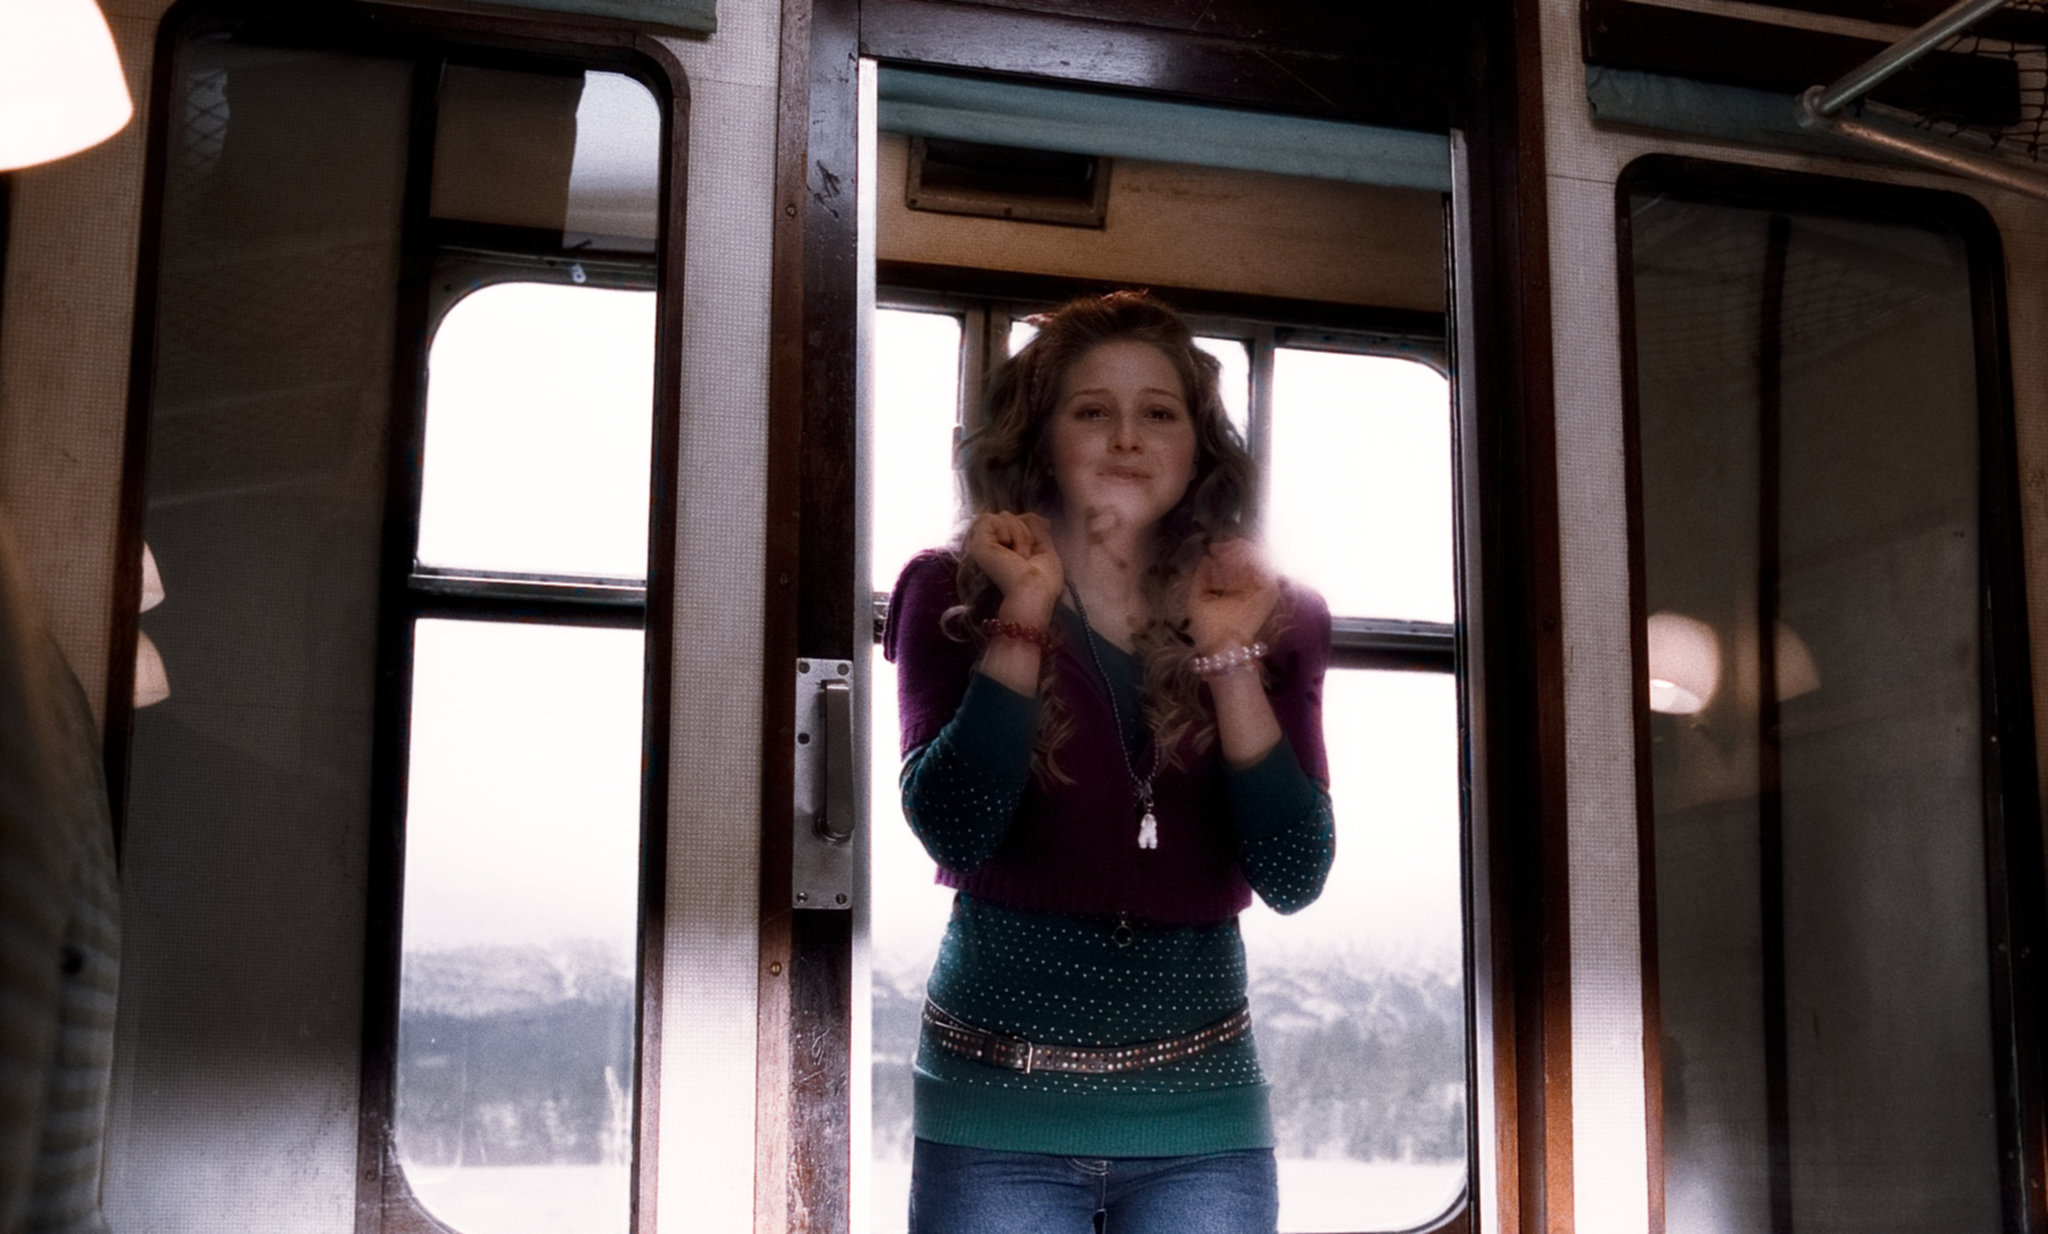 Lavender Brown writes a love message to Ron on the window of the Hogwarts Express.